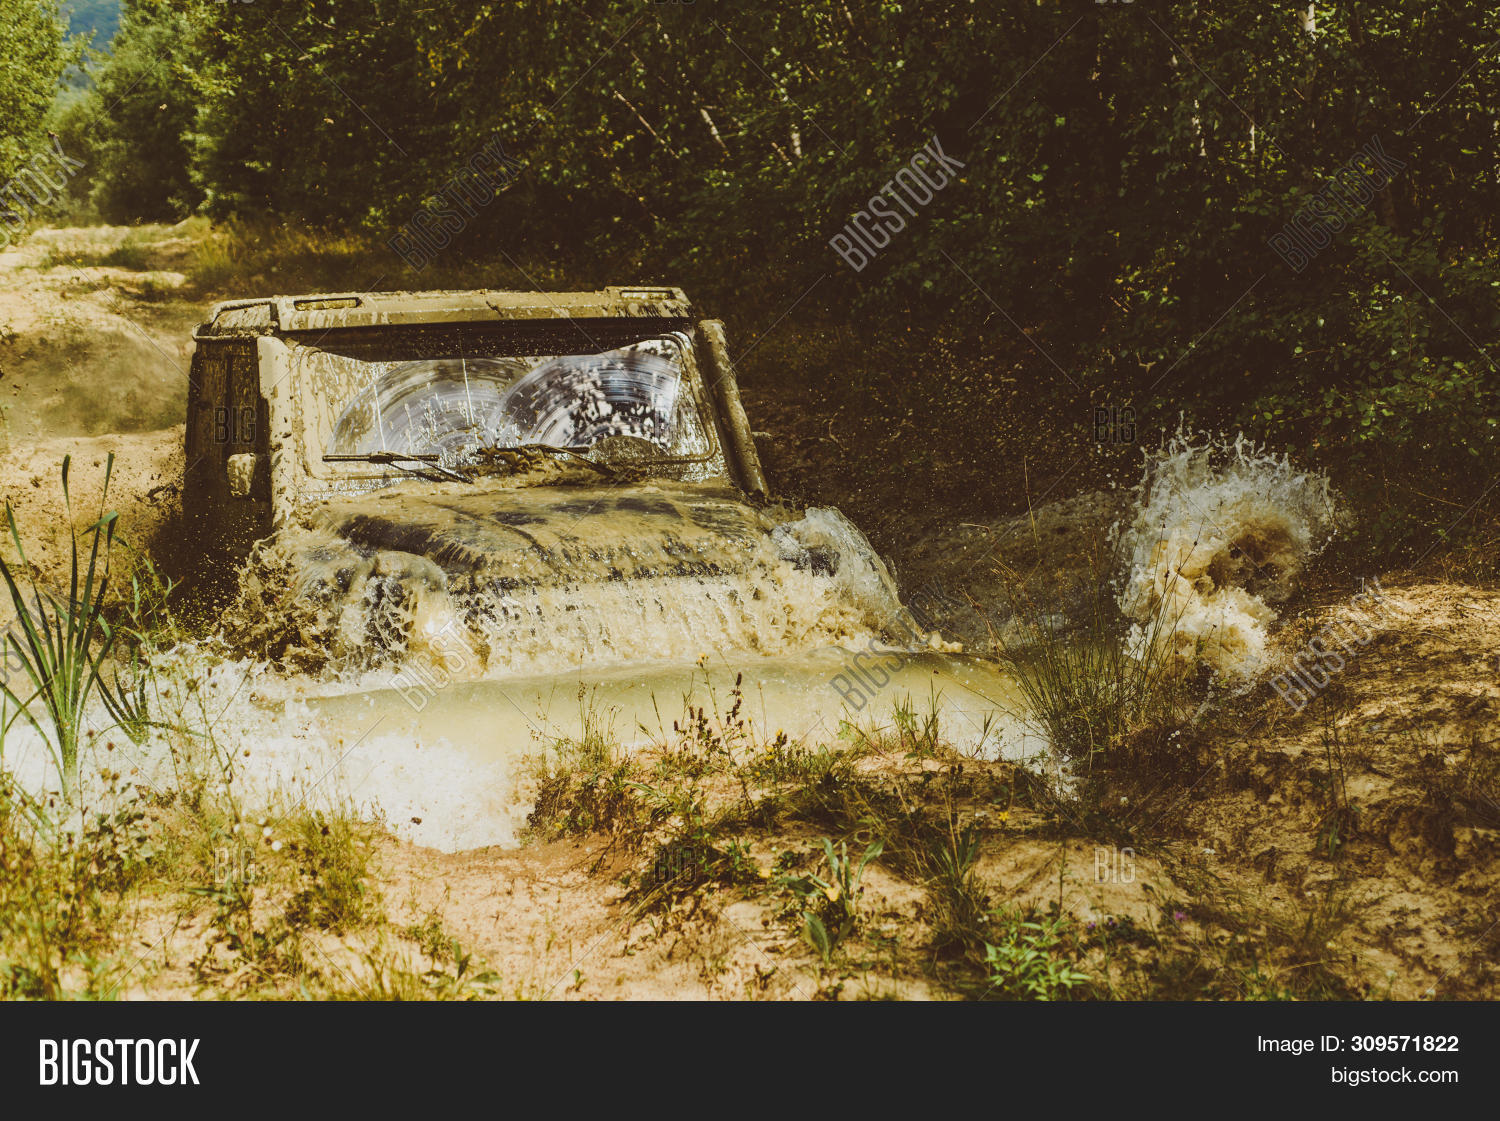 Best Off Road 4x4 >> Best Off Road Vehicles Image Photo Free Trial Bigstock